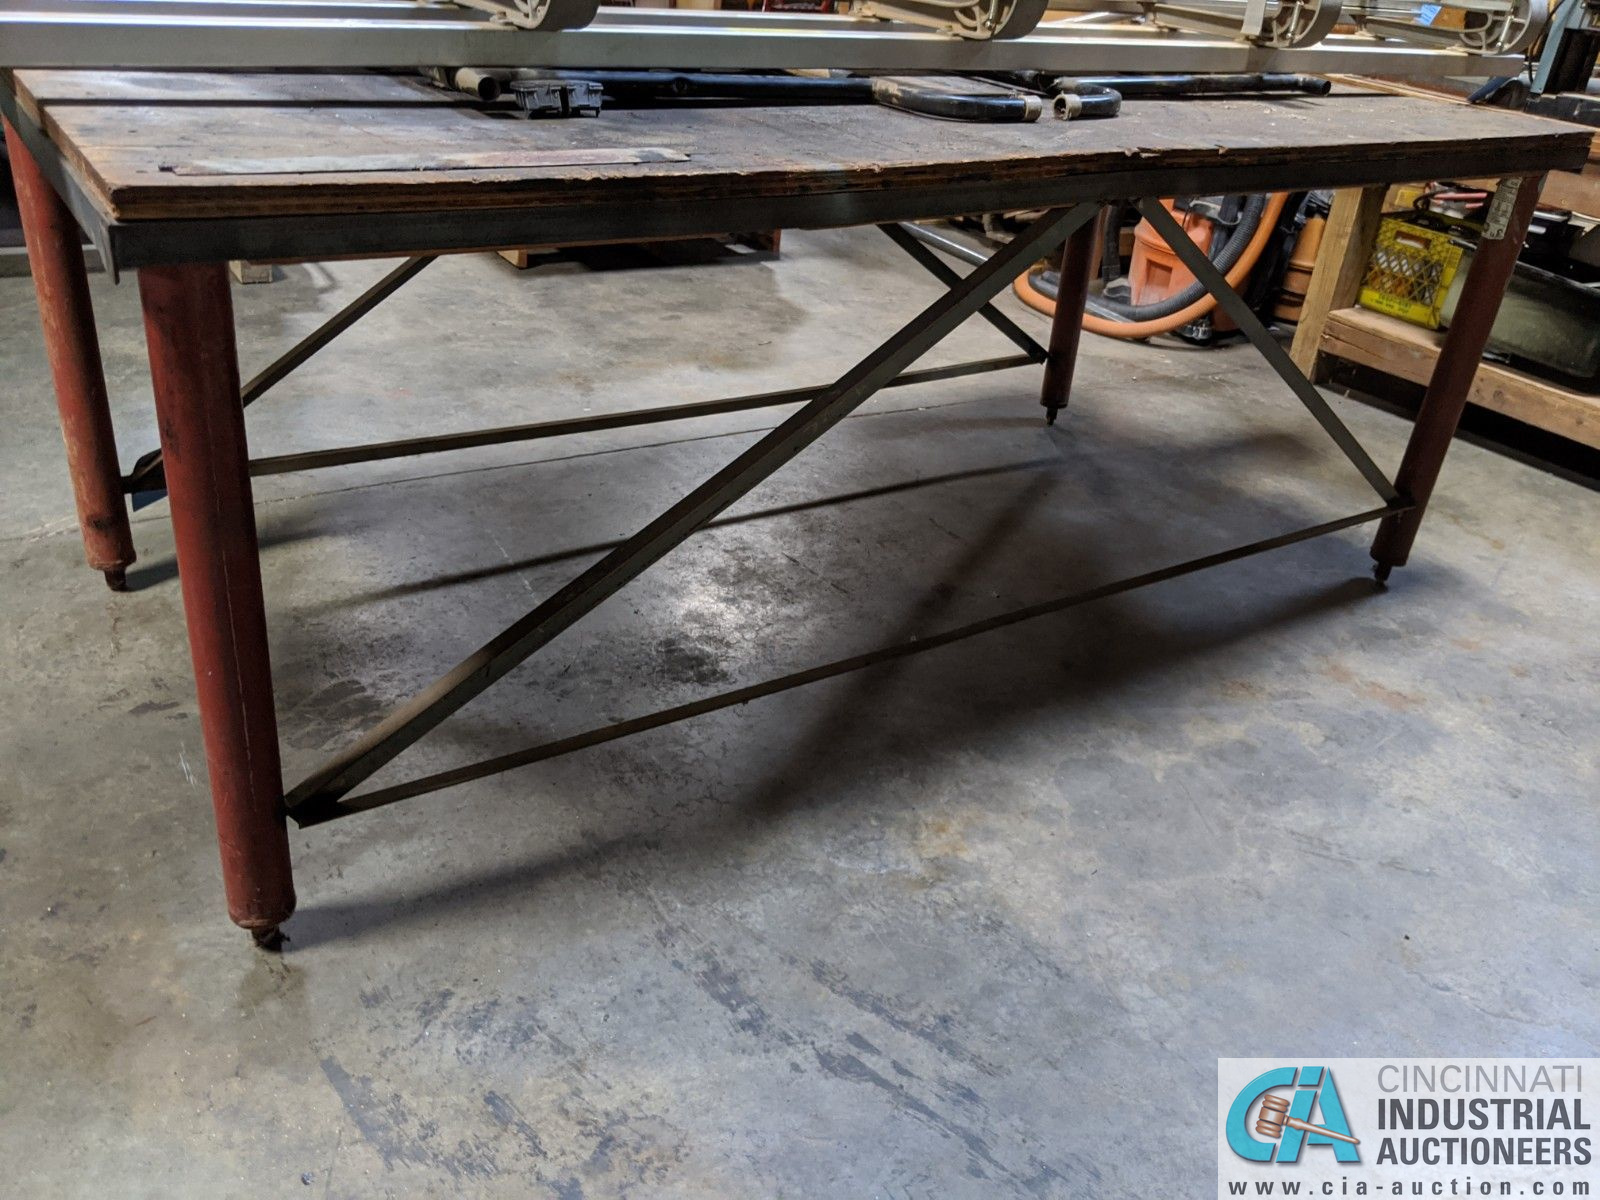 """48"""" X 96"""" STEEL FRAME TABLE (8635 East Ave., Mentor, OH 44060 - John Magnasum: 440-667-9414) - Image 2 of 2"""